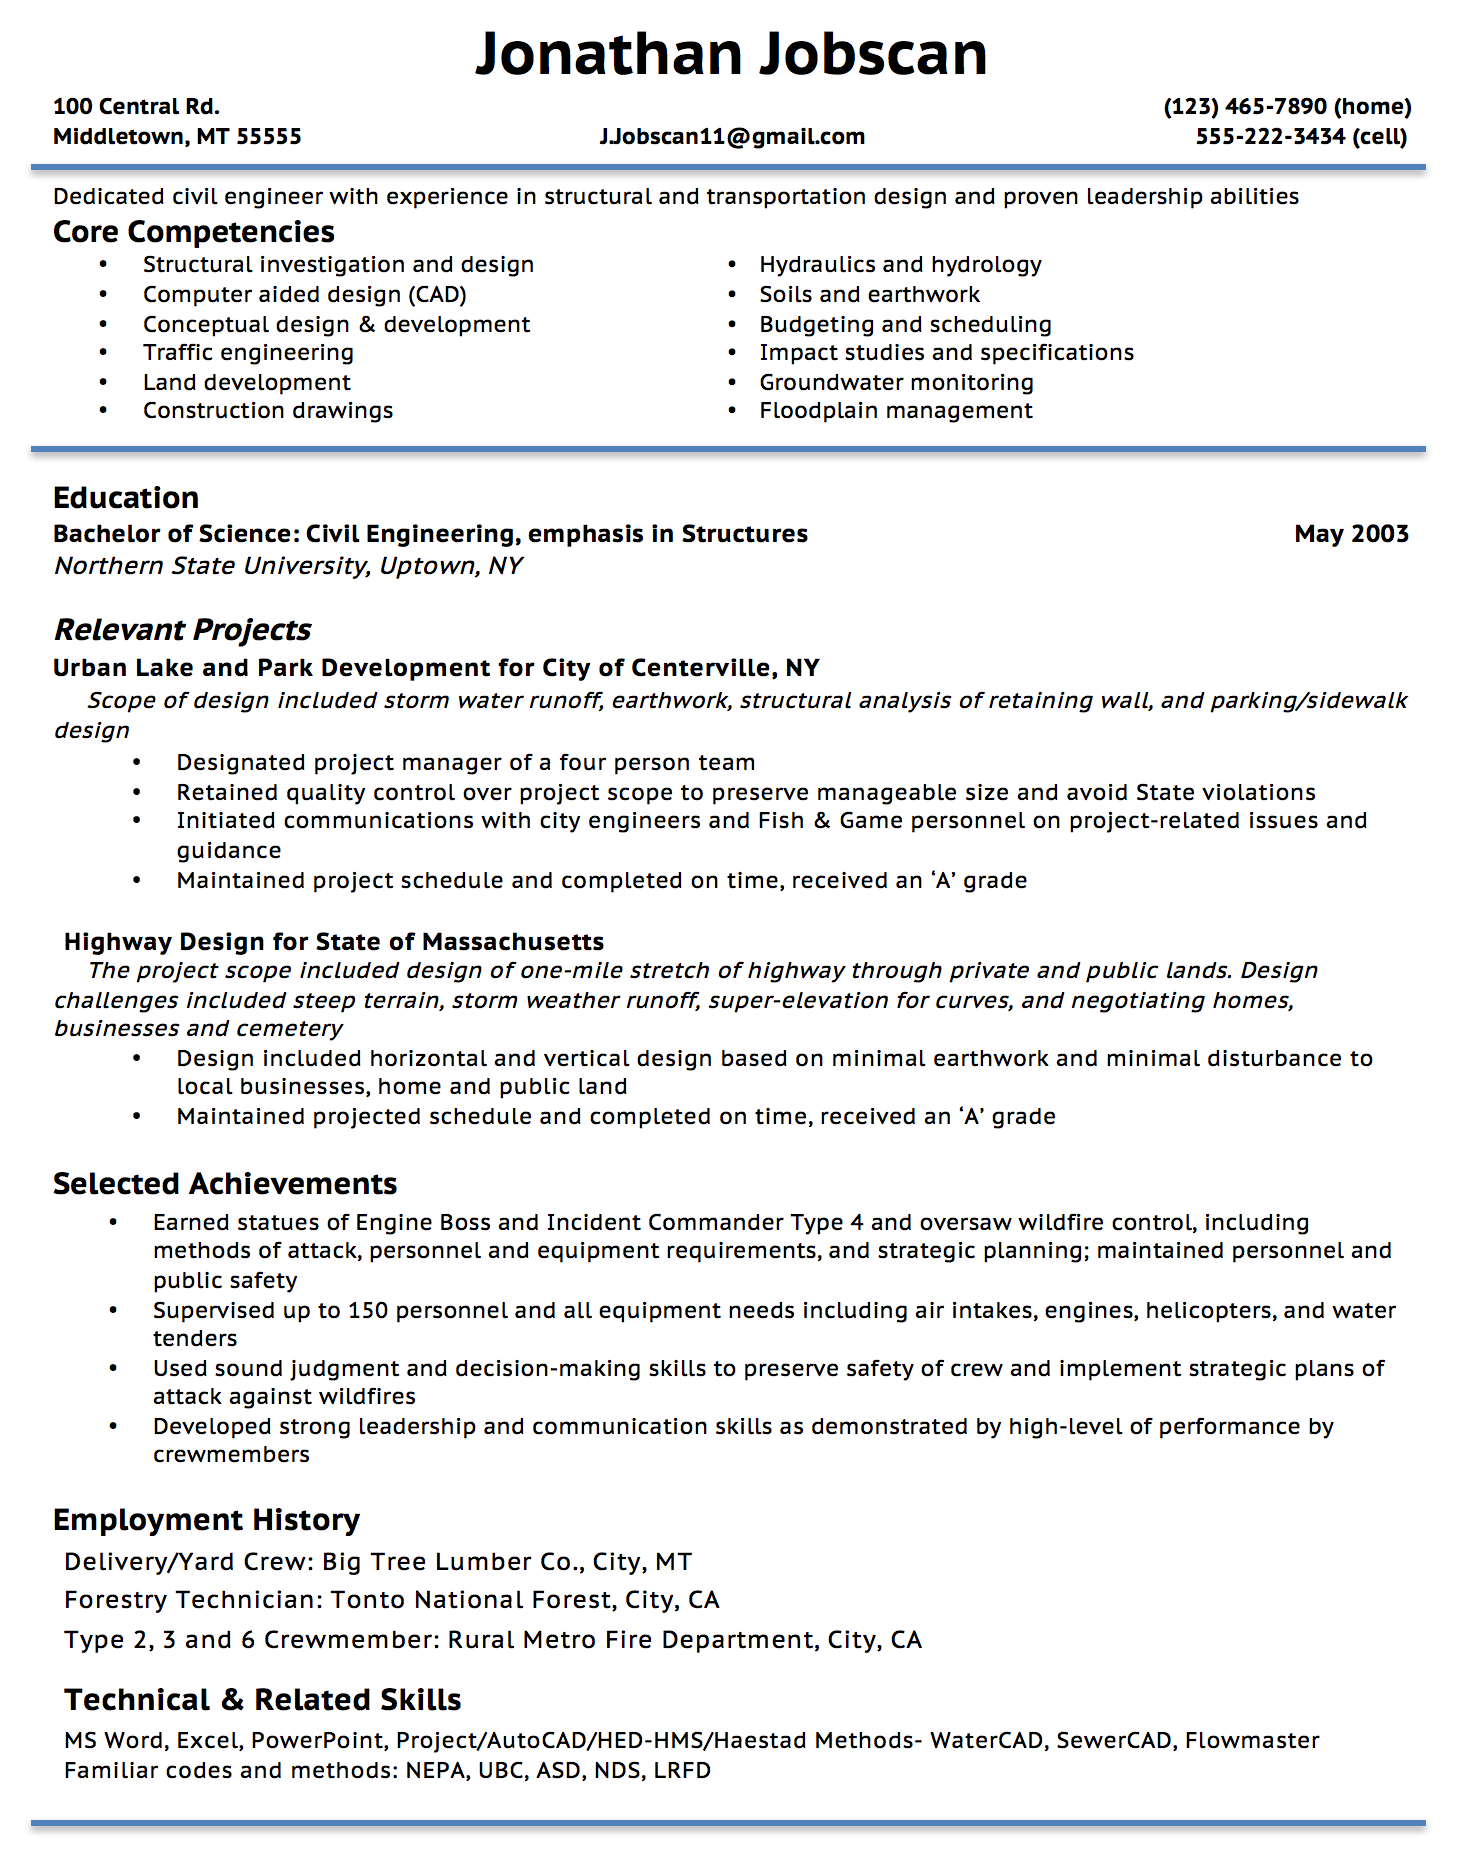 Opposenewapstandardsus  Nice Resume Writing Guide  Jobscan With Inspiring Example Of A Functional Resume Format With Easy On The Eye How To Email Cover Letter And Resume Also Resume For Retail Job In Addition Resume Helpers And Free Resume Builder Reviews As Well As Federal Government Resume Format Additionally Download Free Resume Templates For Word From Jobscanco With Opposenewapstandardsus  Inspiring Resume Writing Guide  Jobscan With Easy On The Eye Example Of A Functional Resume Format And Nice How To Email Cover Letter And Resume Also Resume For Retail Job In Addition Resume Helpers From Jobscanco